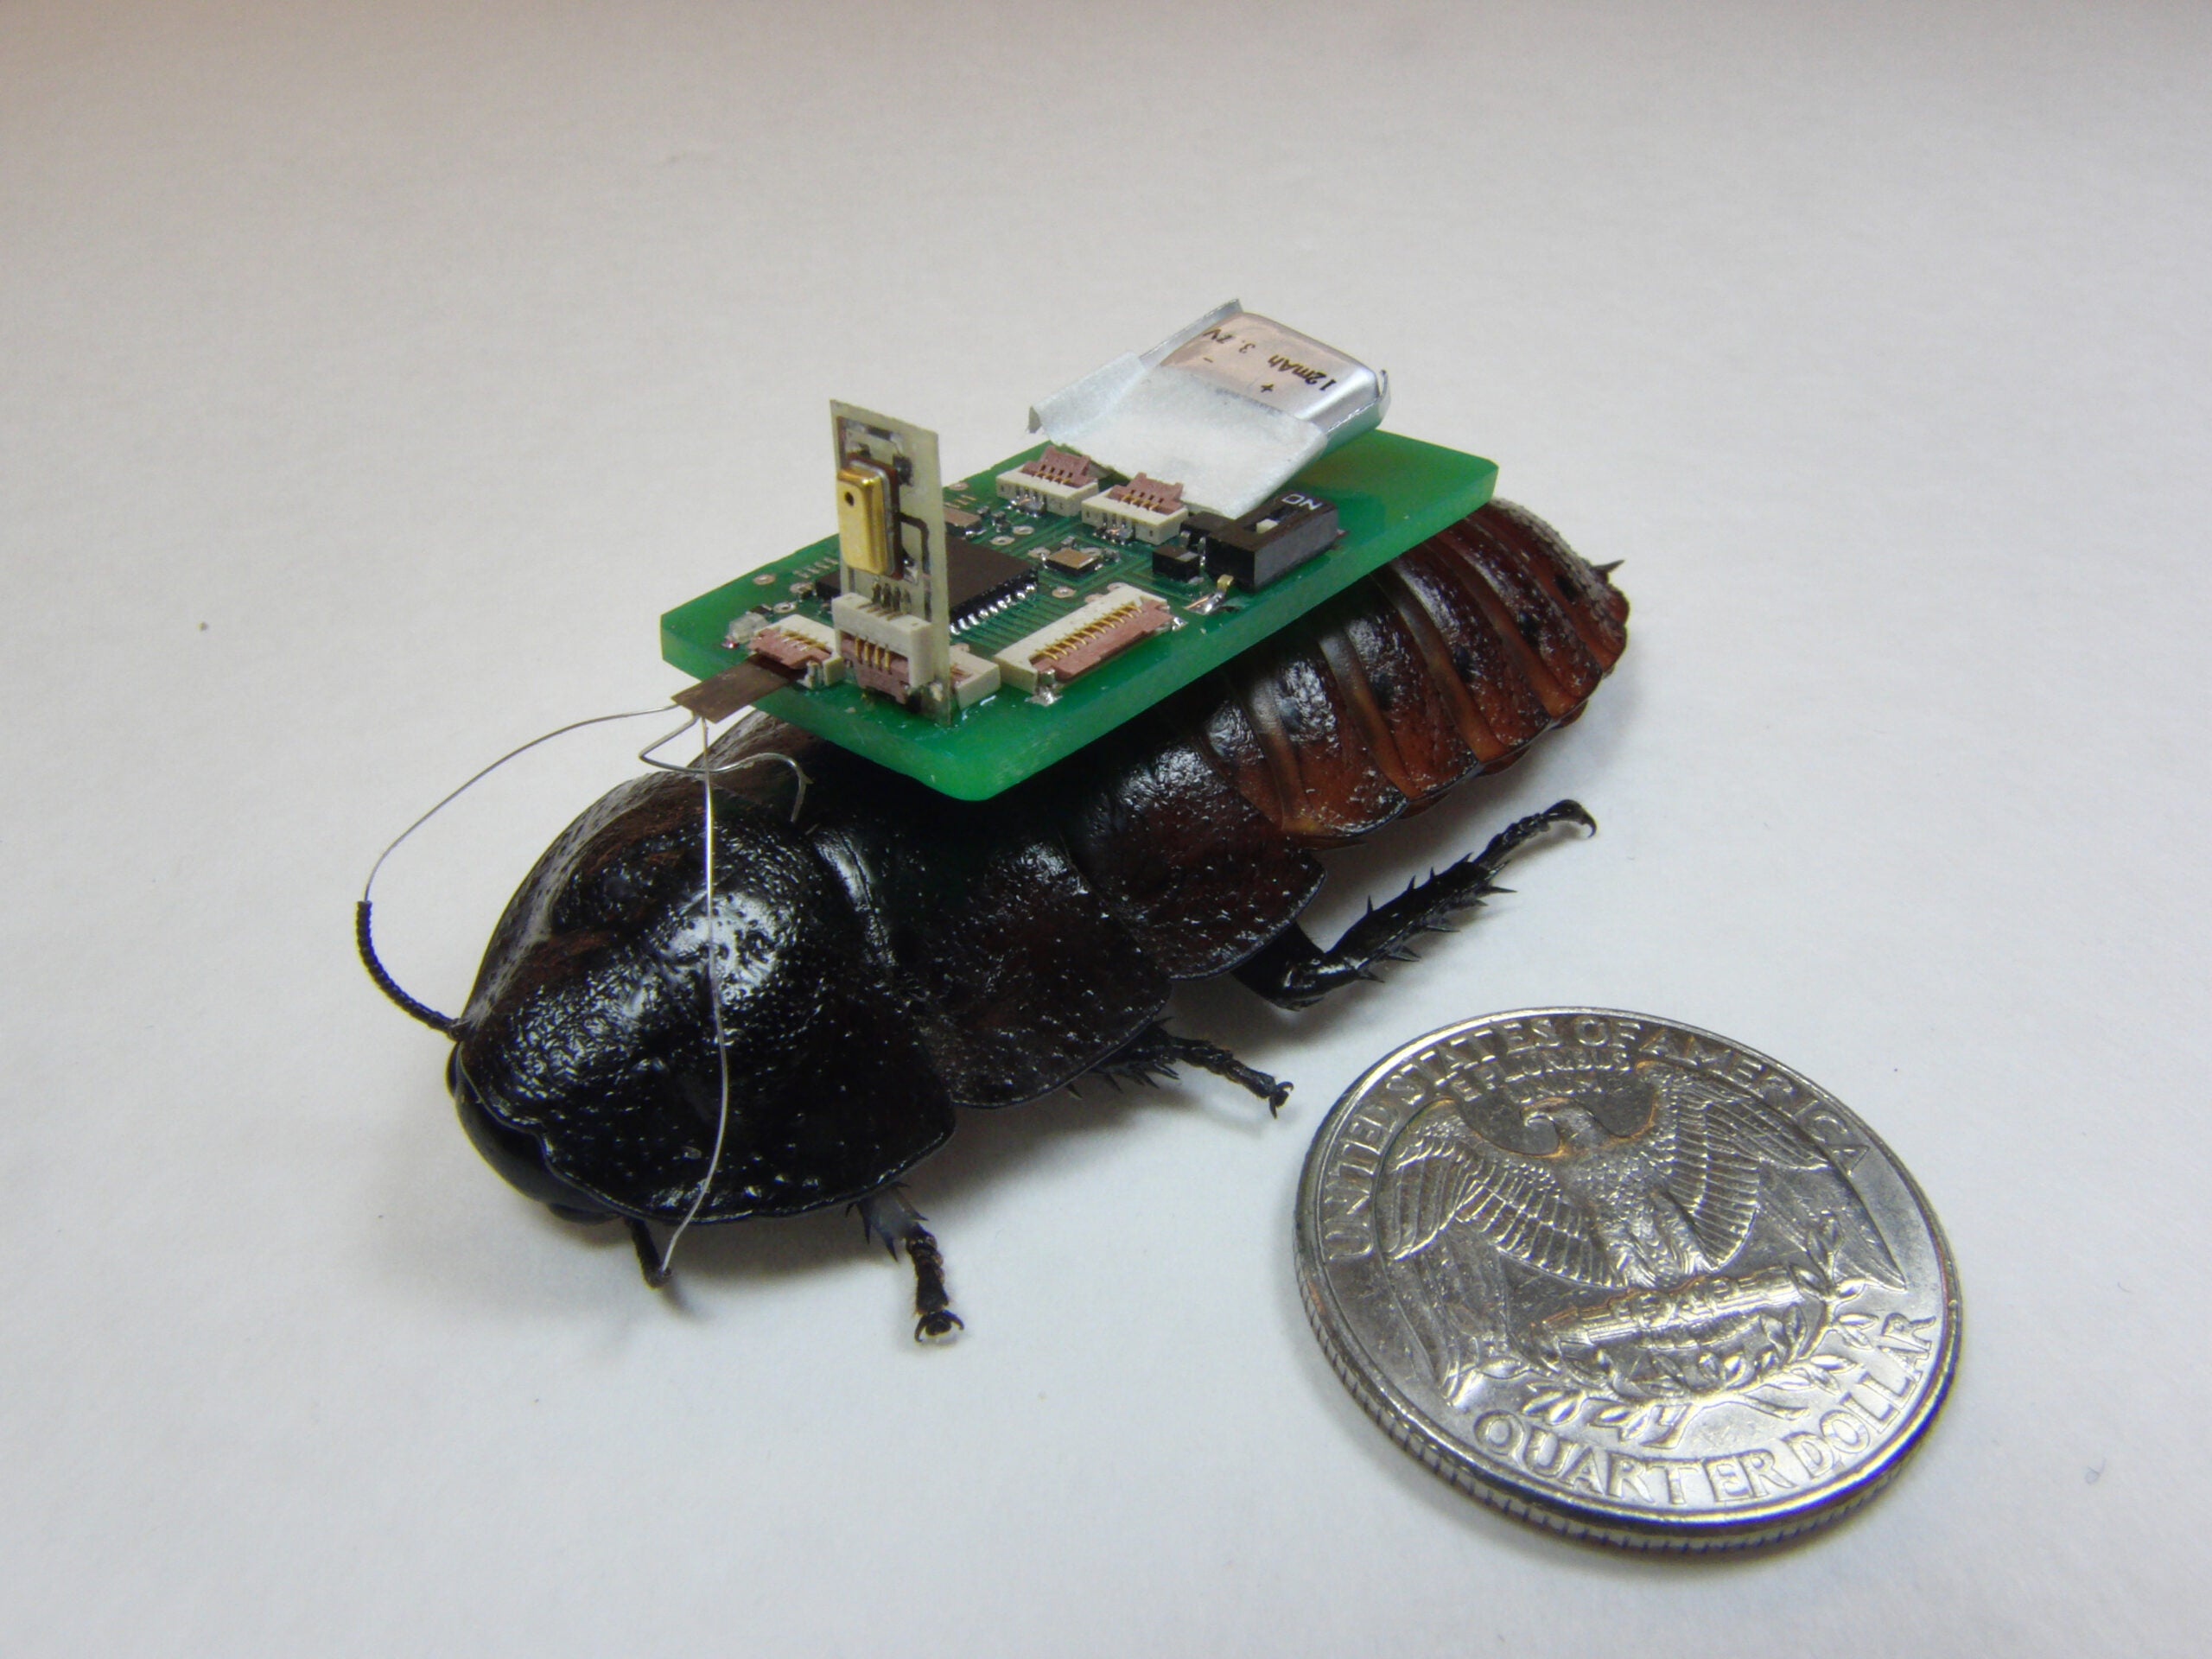 Cyborg Roaches Could Help In Disasters